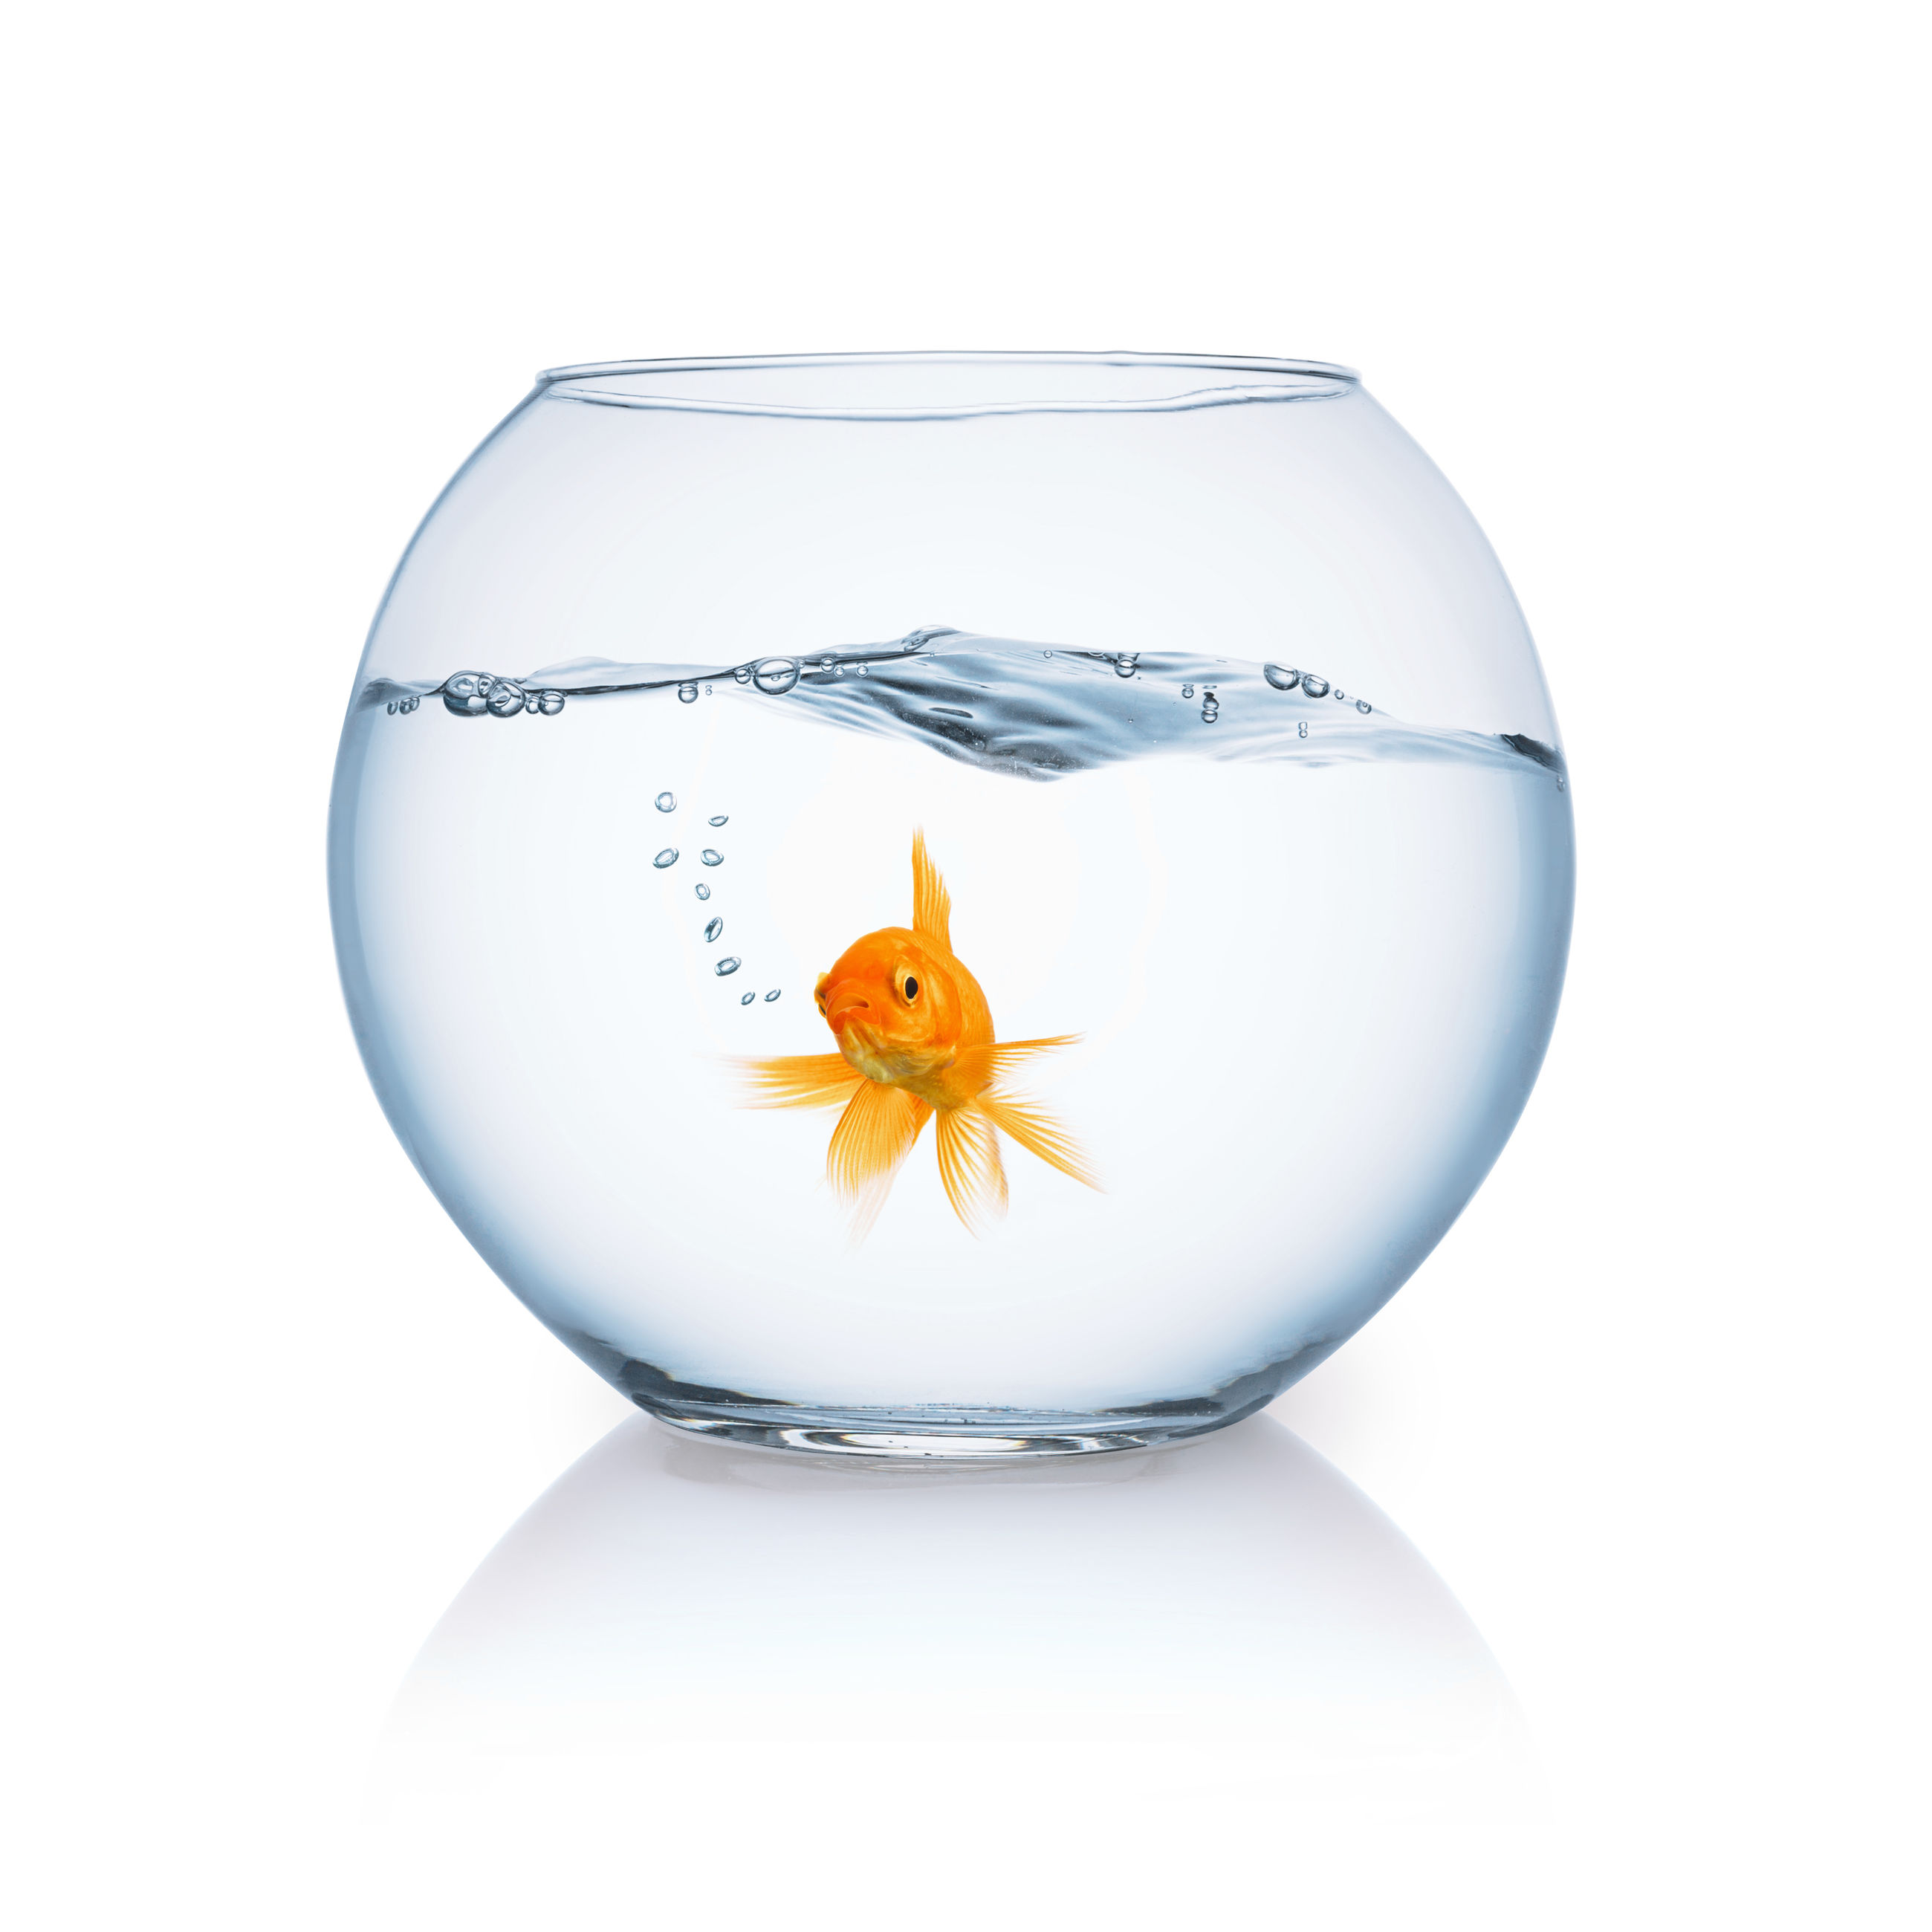 Close-up of goldfish in bowl against white background